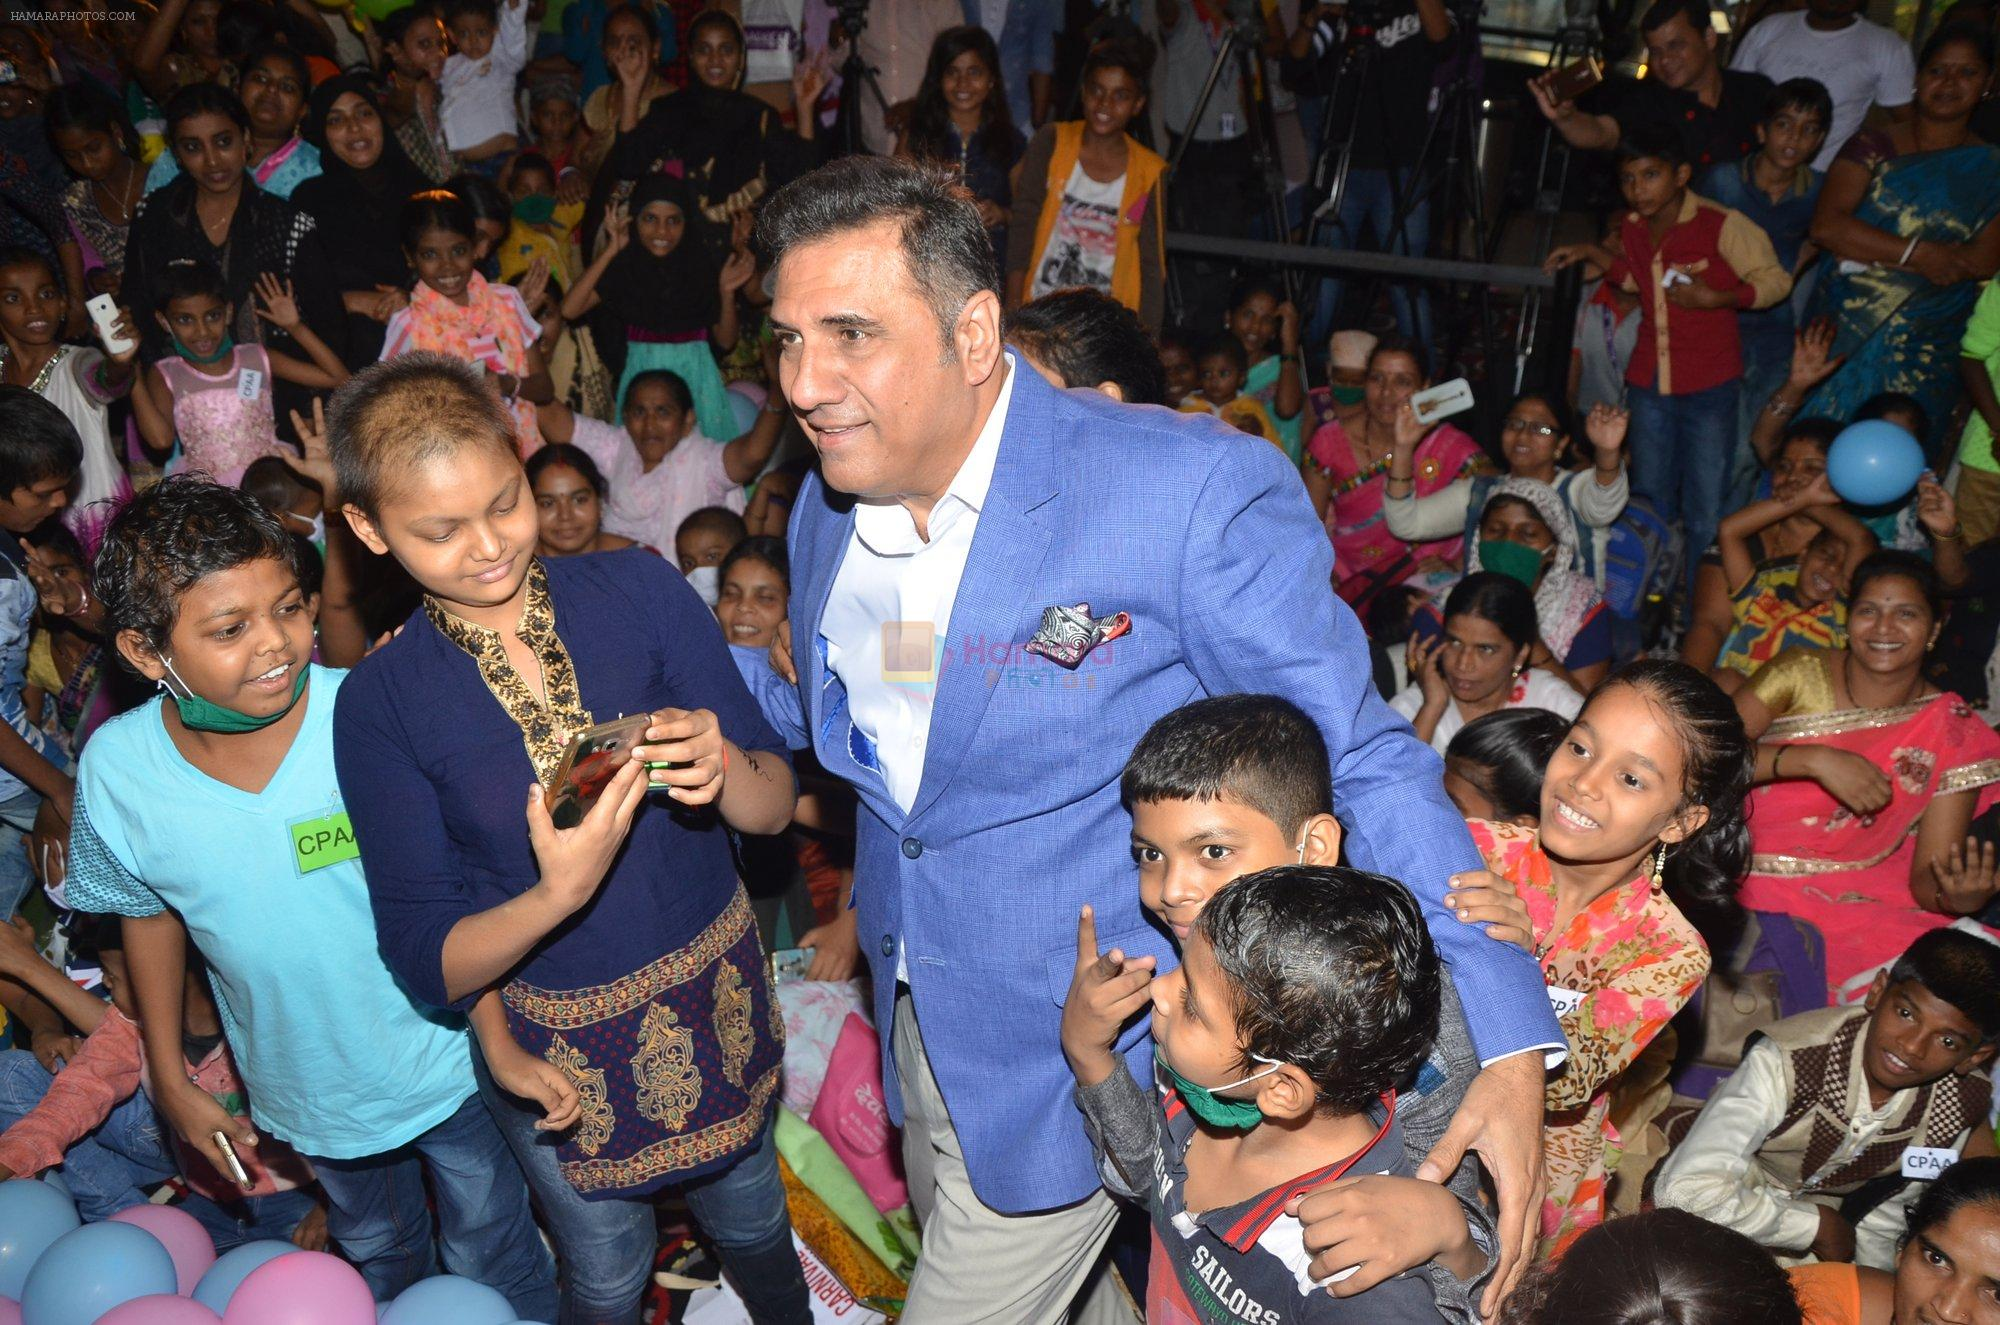 Boman Irani at CPAA event on 26th Nov 2016